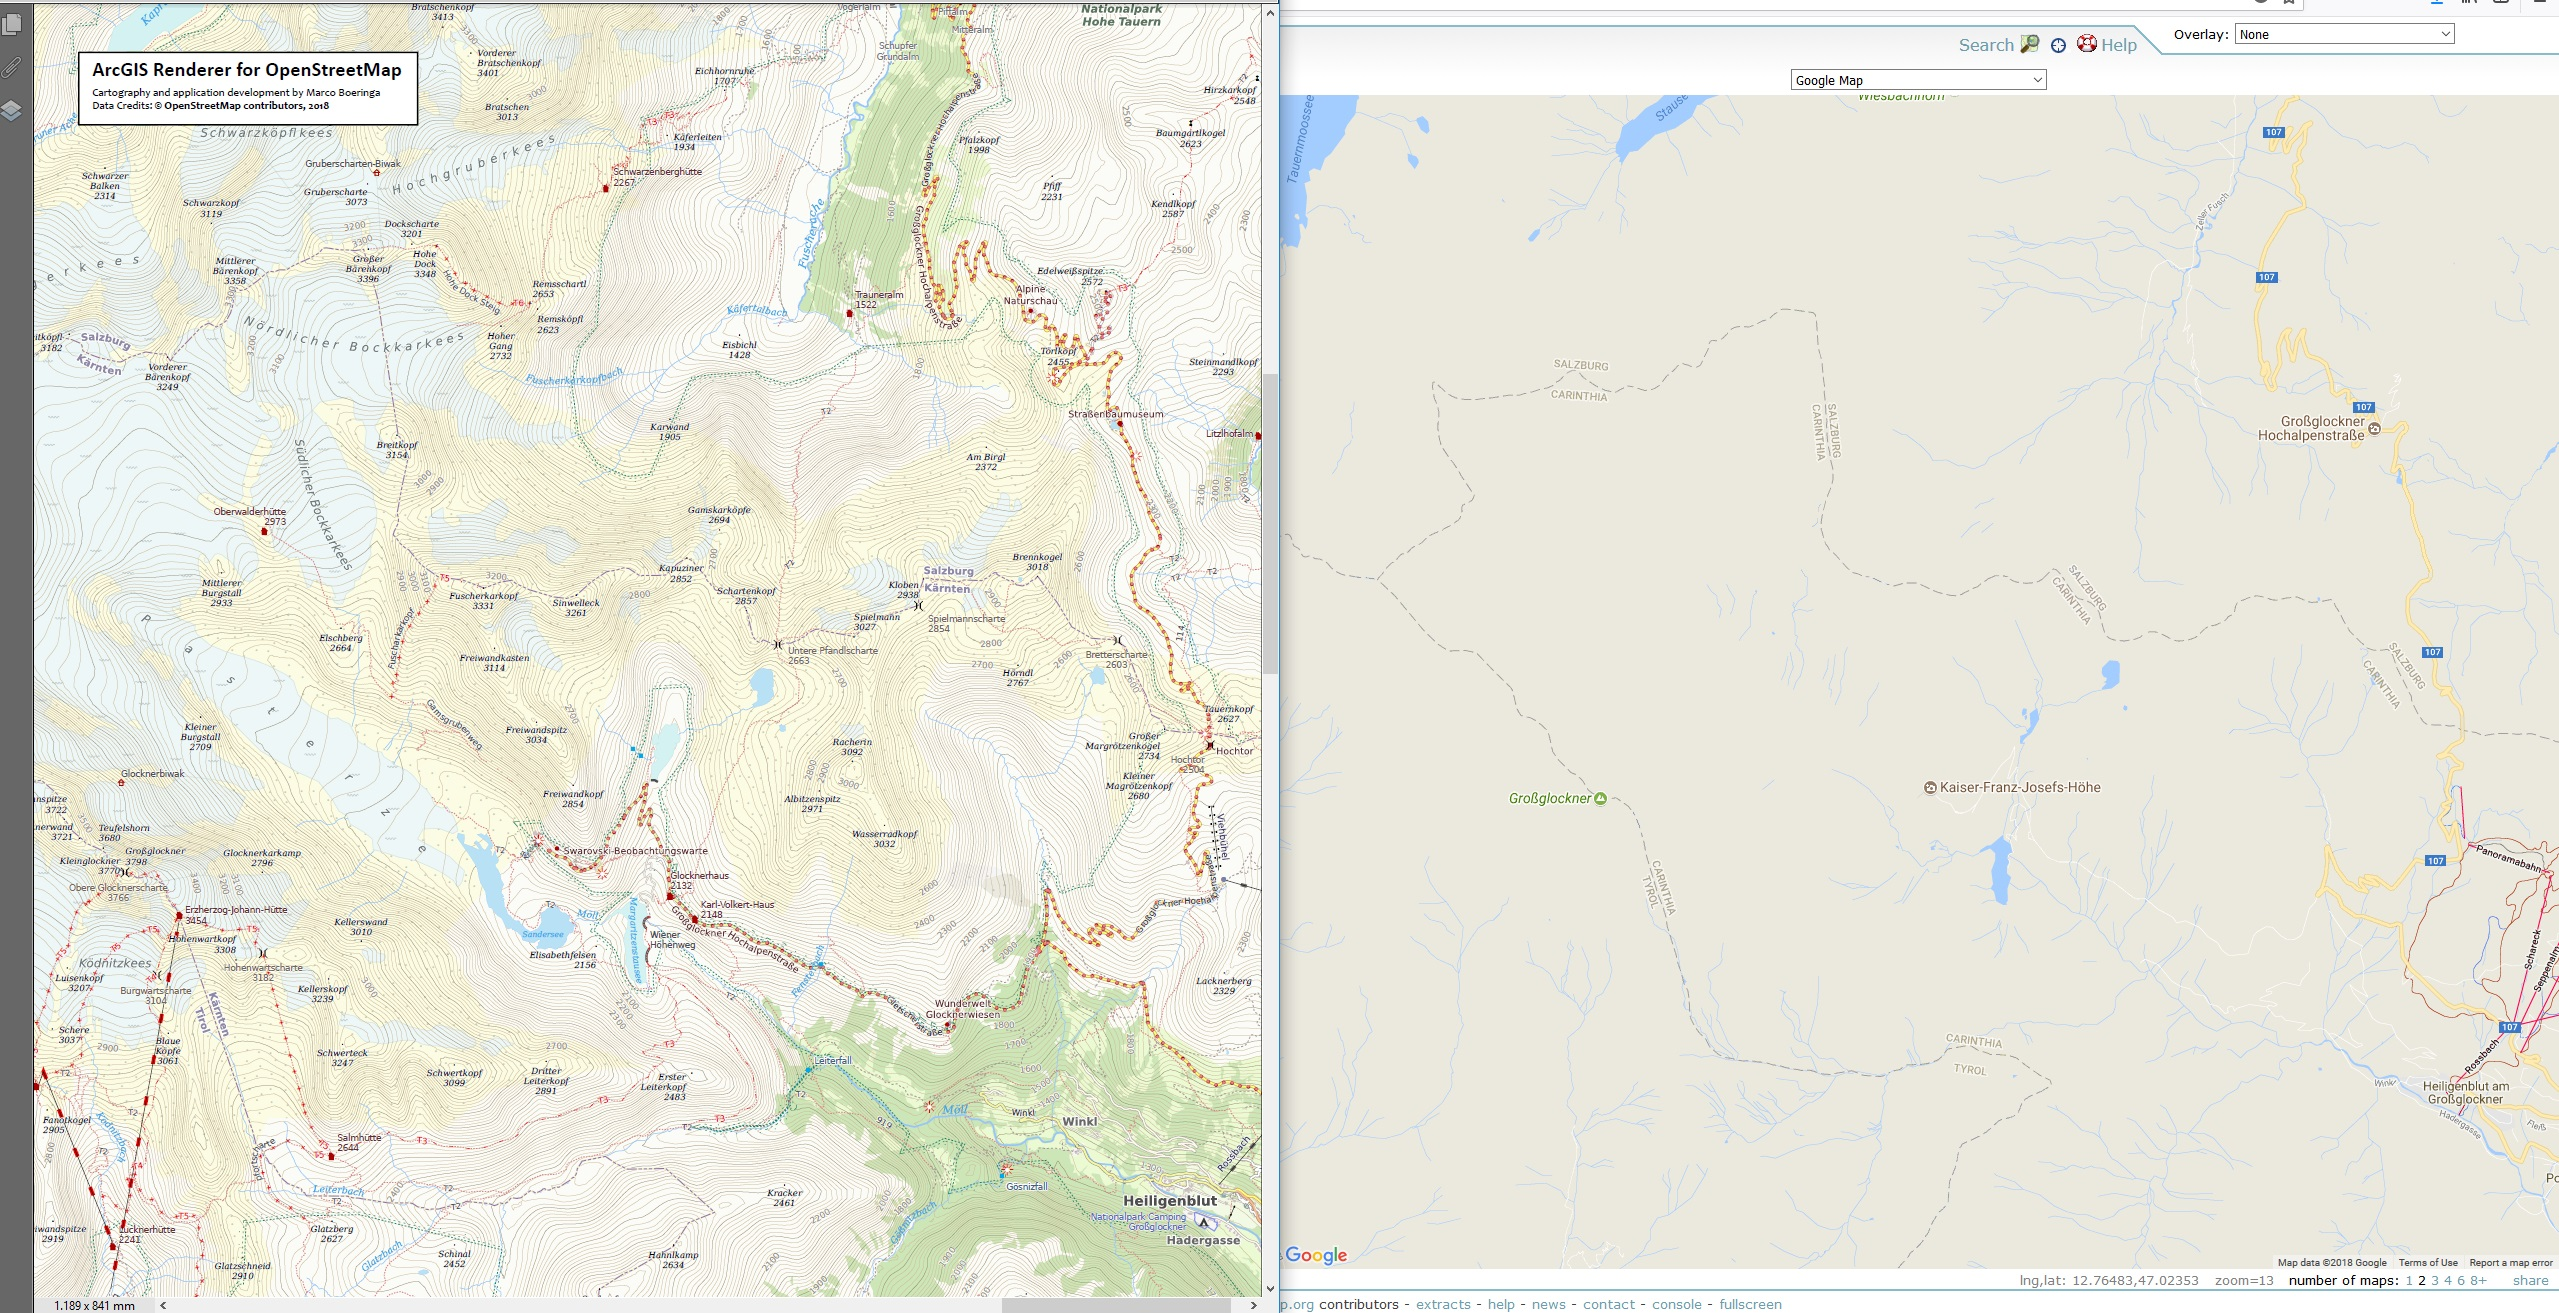 ArcGIS Renderer for OpenStreetMap - Austria - Hohe Tauern